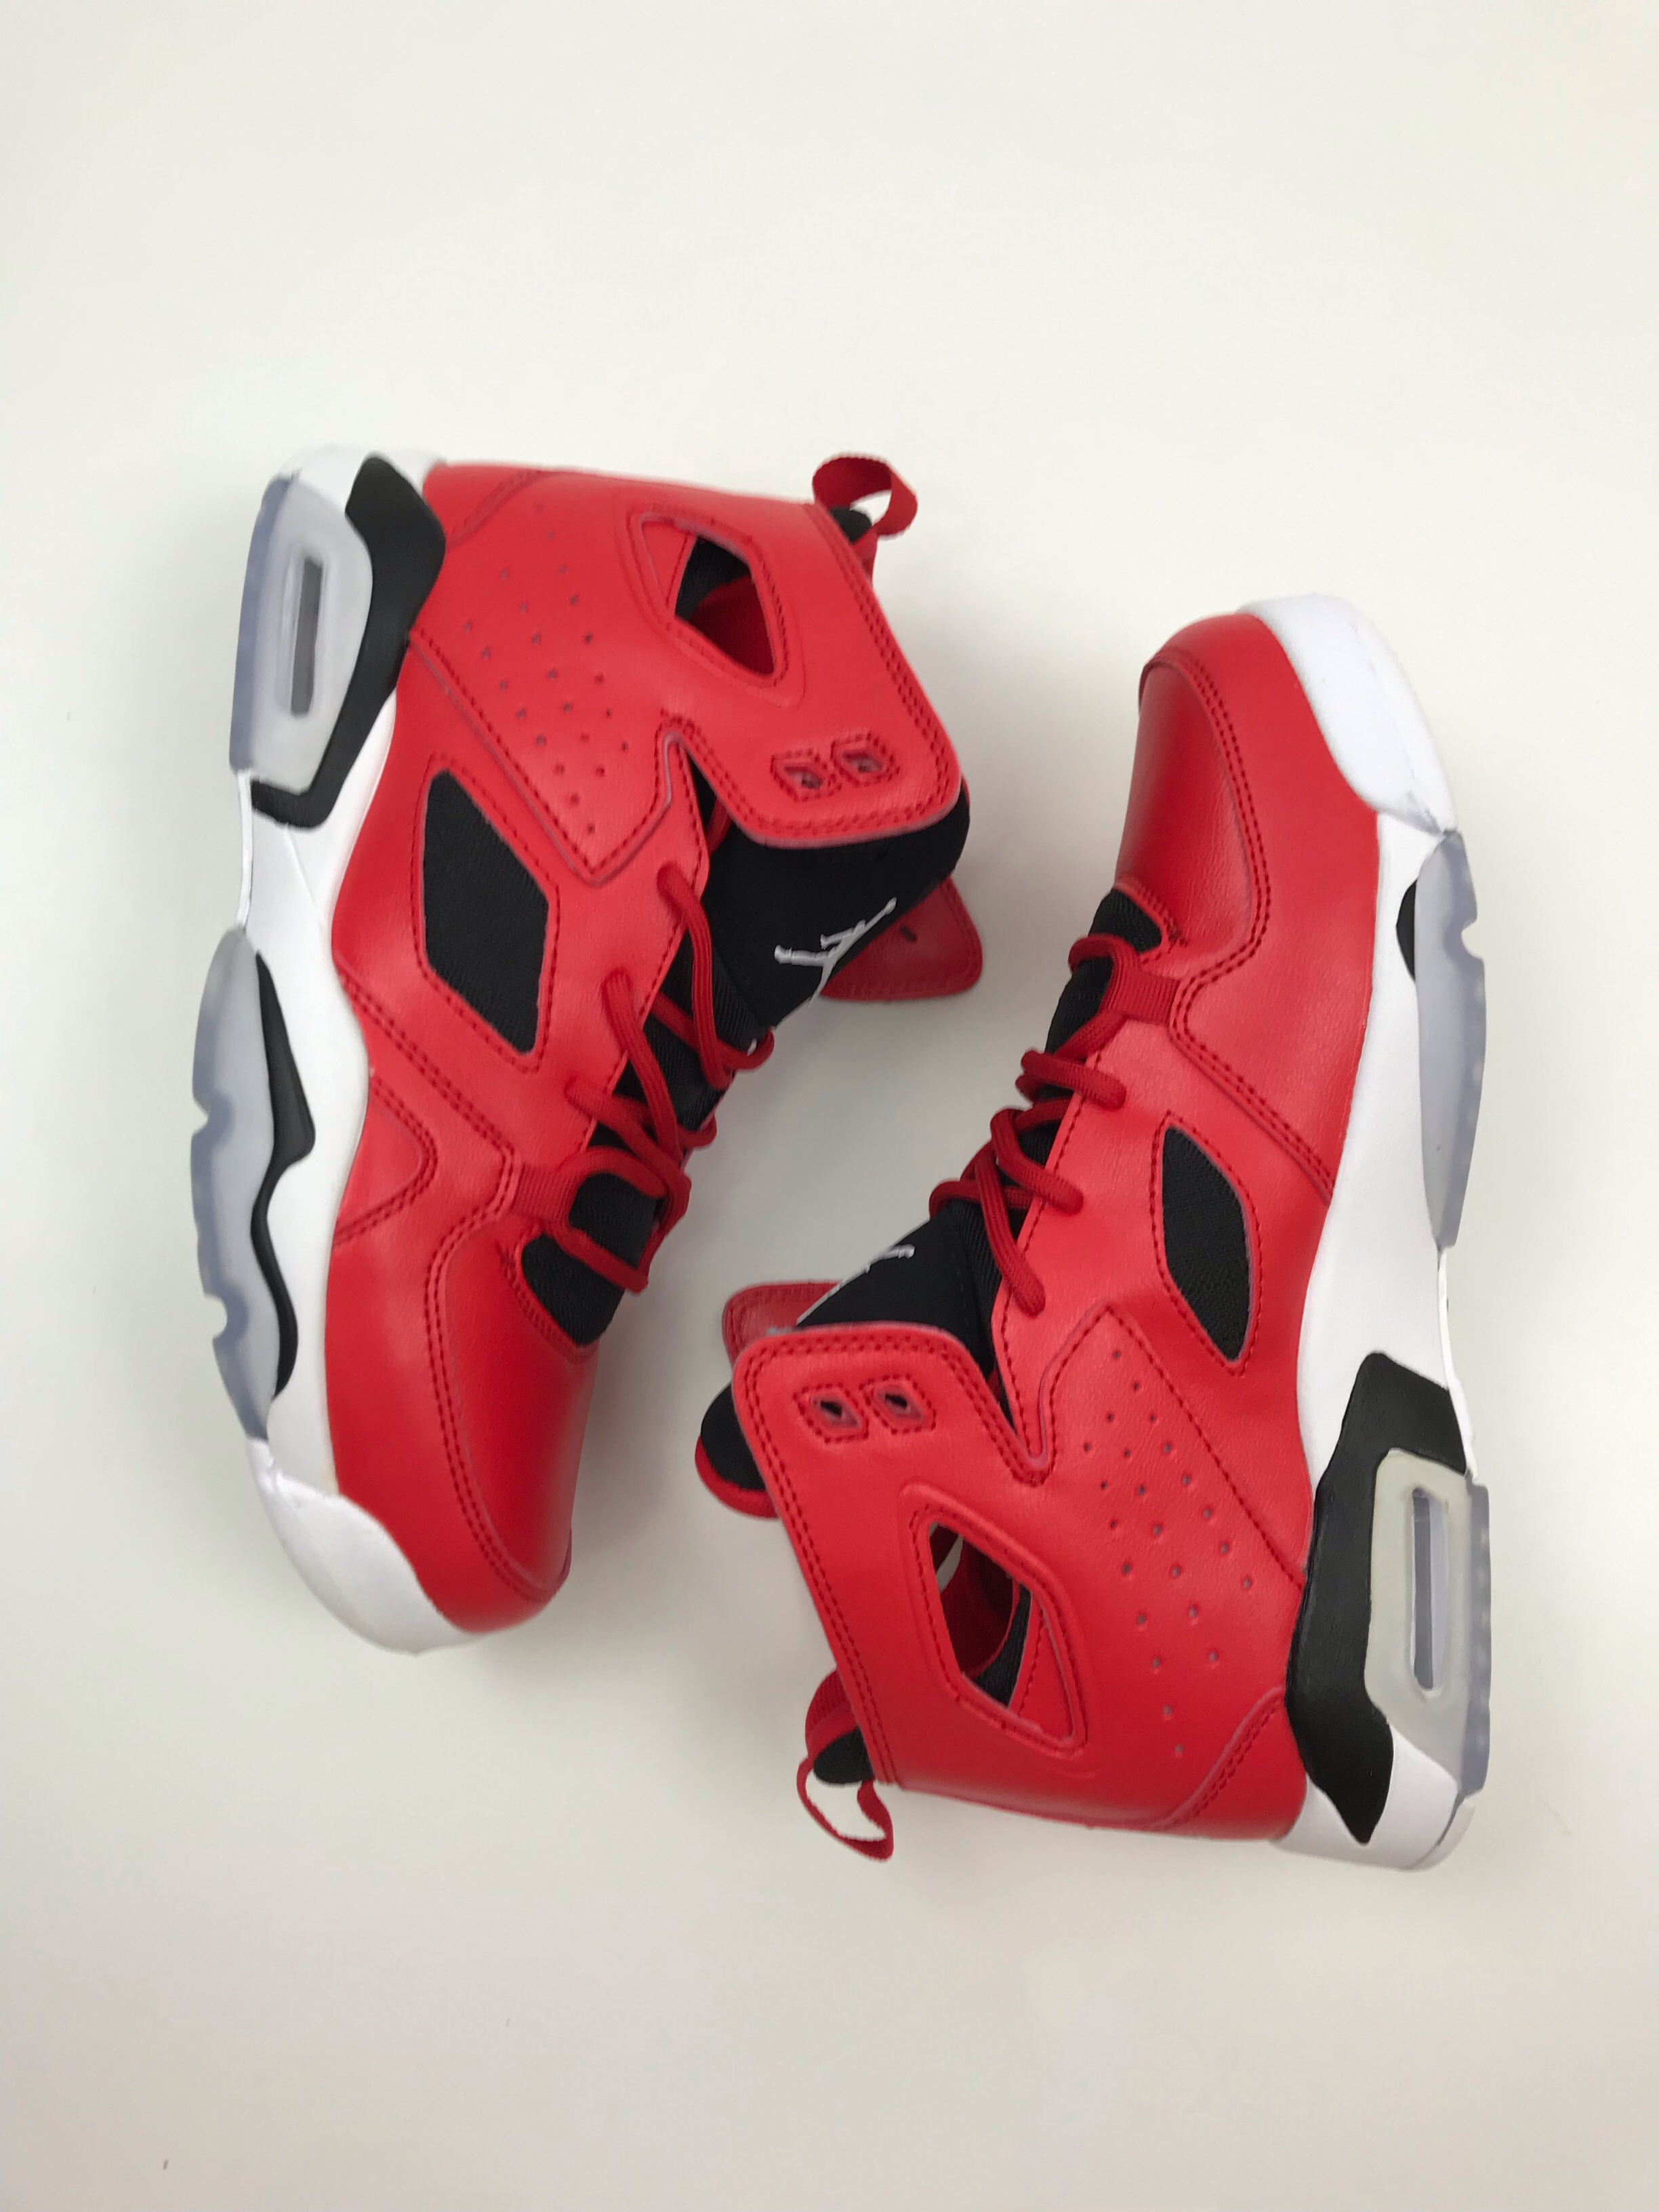 Air Jordan 6 '91 Red Black White Shoes